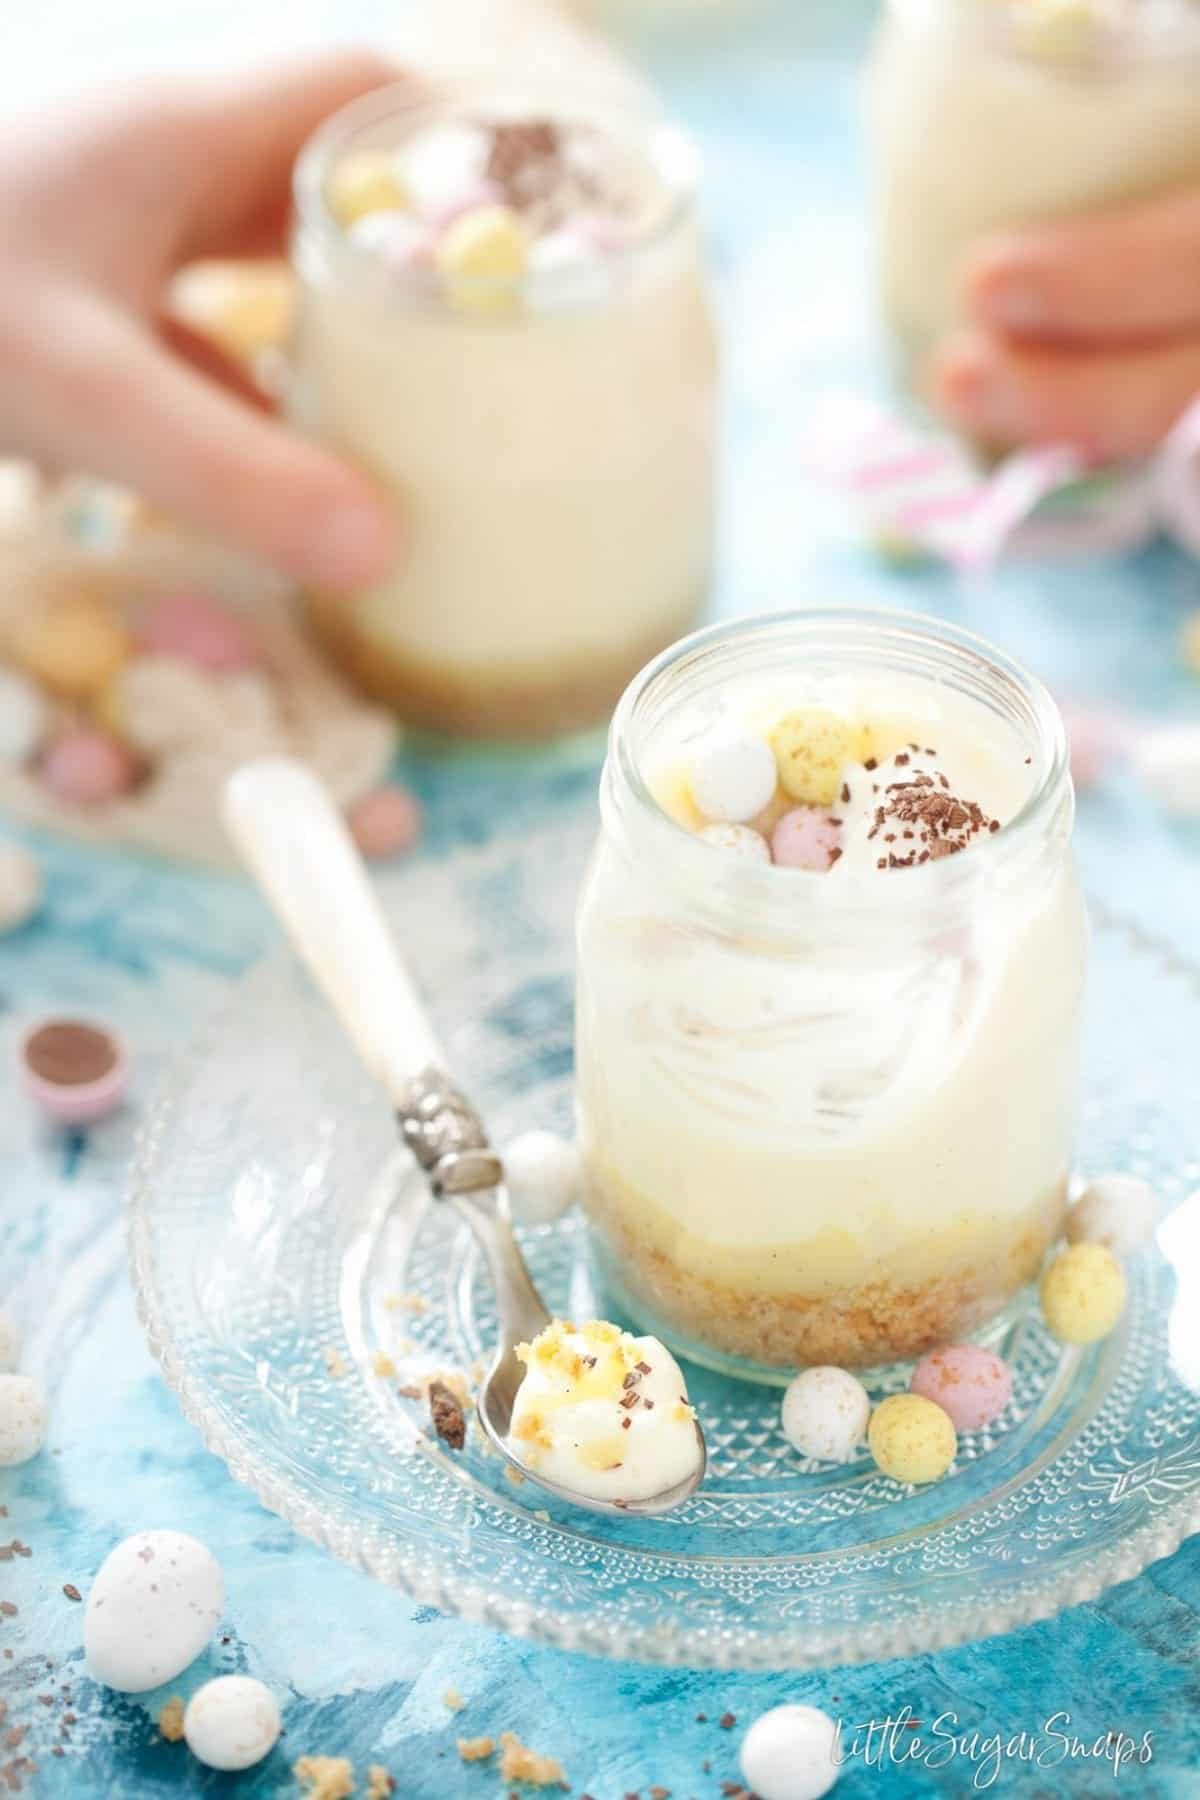 Easy easter dessert recipe with white chocolate, lemon curd, crushed biscuits and mini eggs. Dessert served in glass pots, once is part eaten, hands are taking others away